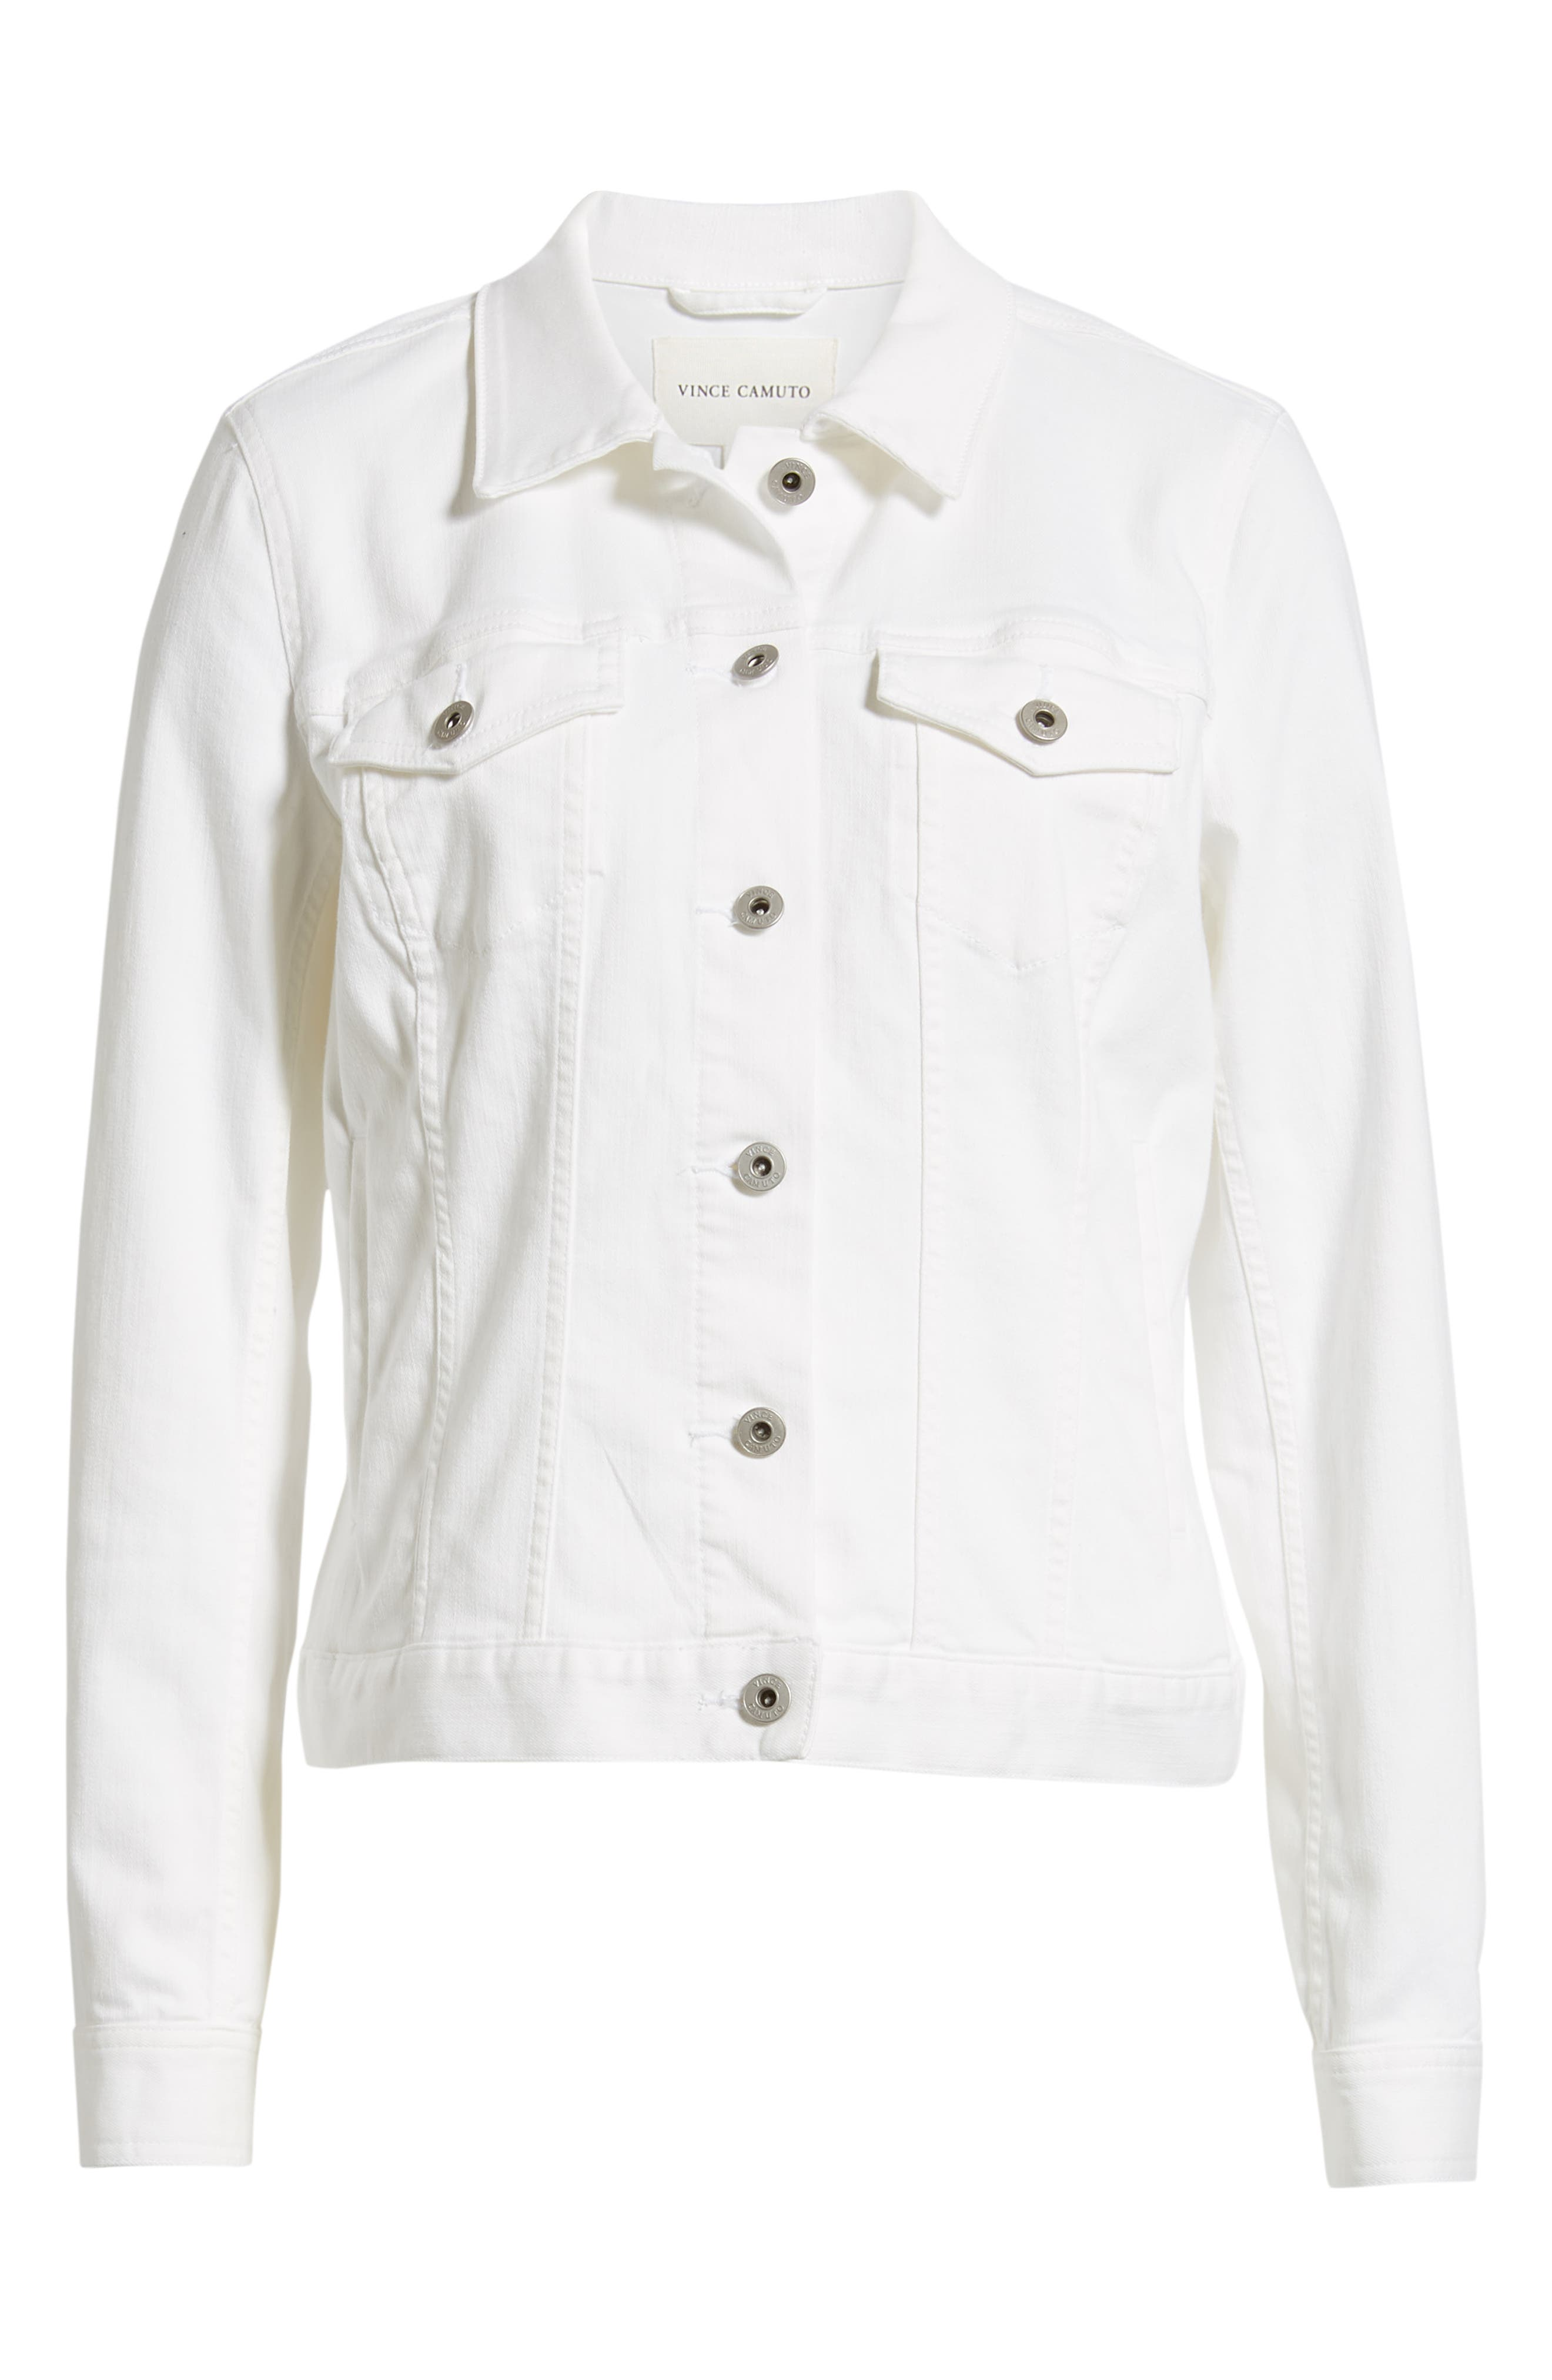 VINCE CAMUTO, Two by Vince Camuto Denim Jacket, Alternate thumbnail 6, color, ULTRA WHITE